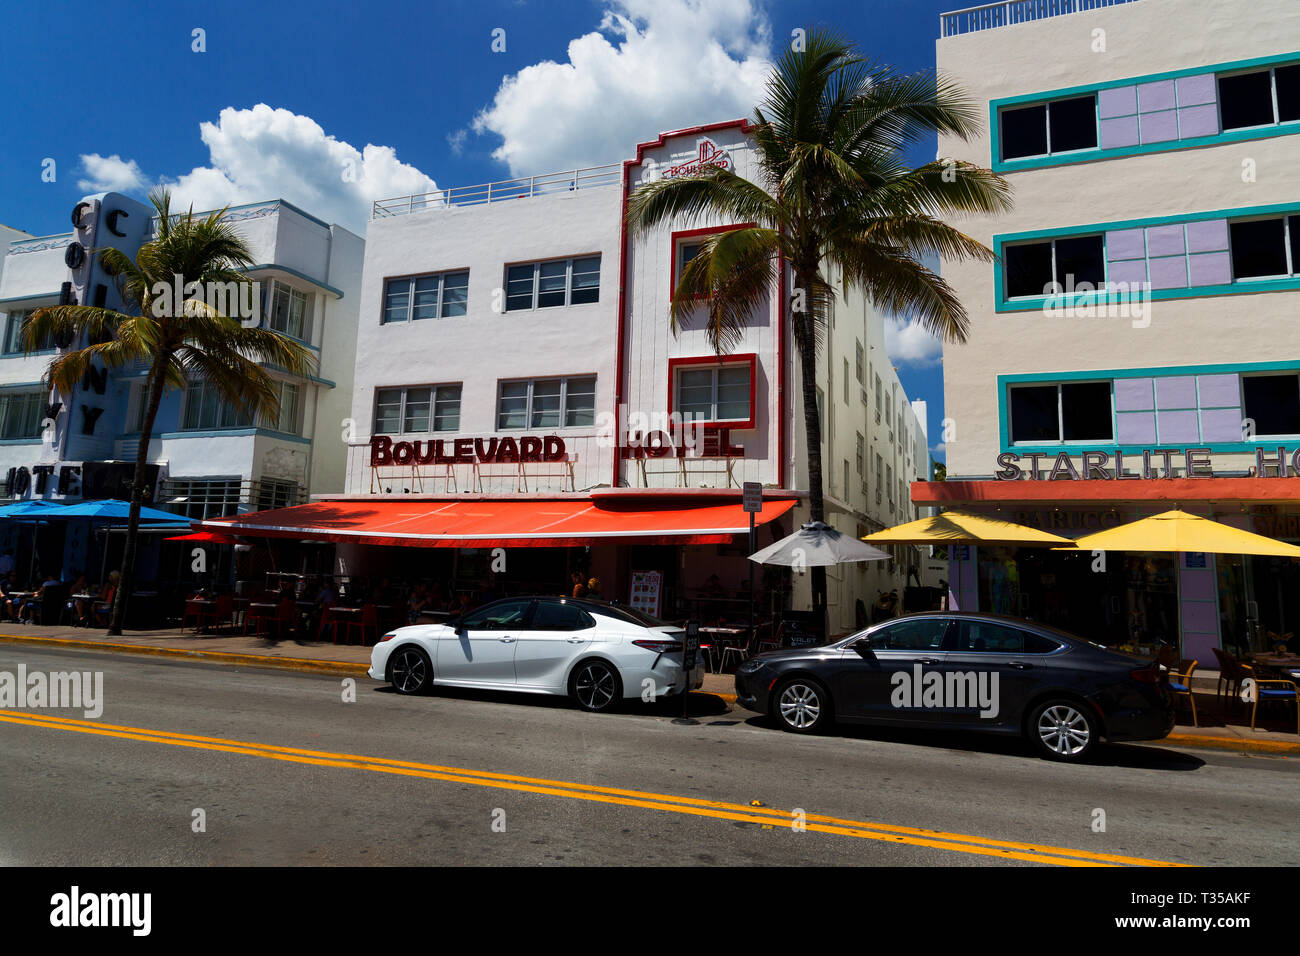 Colony, Boulevard and Starlite Hotels art deco architecture on Ocean Drive, South Beach, Miami, Florida, USA - Stock Image